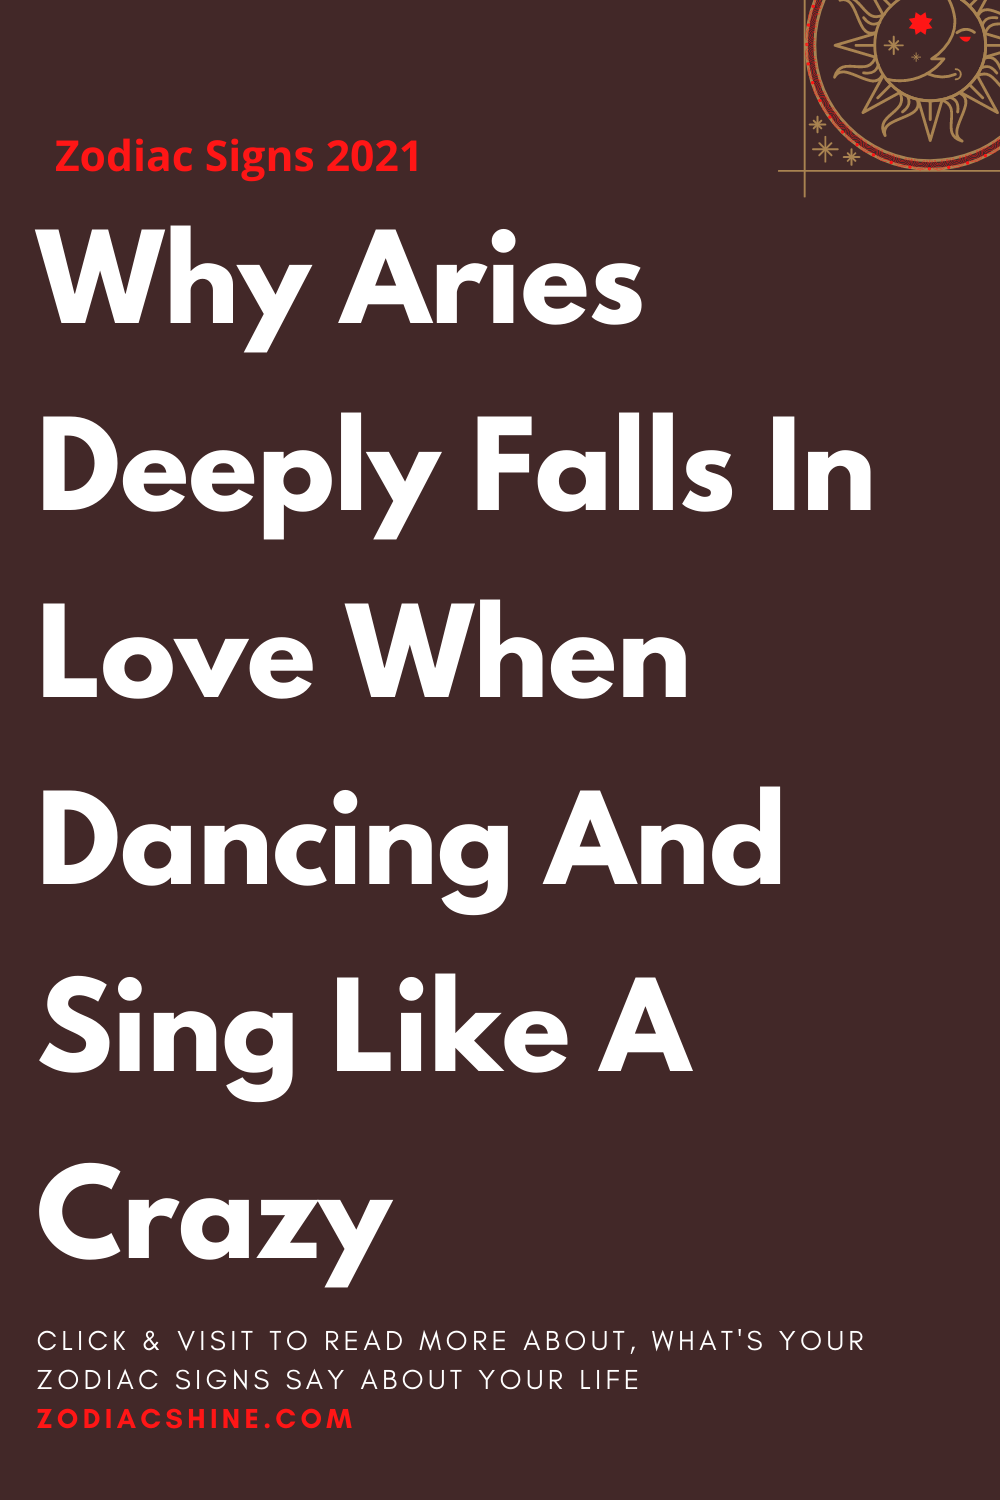 Why Aries Deeply Falls In Love When Dancing And Sing Like A Crazy